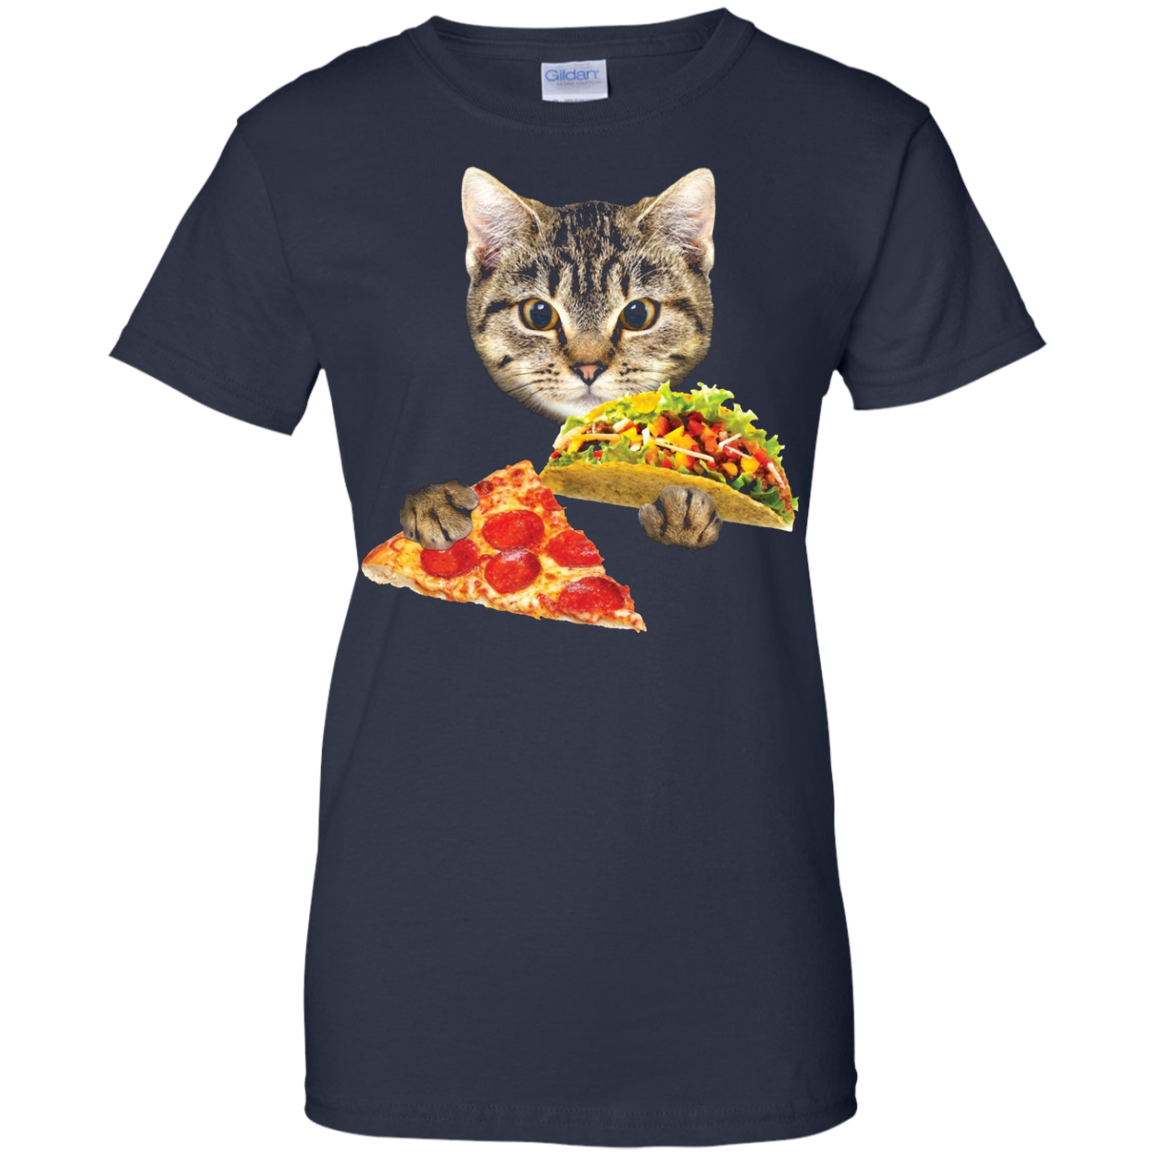 Cat Eating Taco and Pizza Shirt, Funny Kitty by Zany Brainy